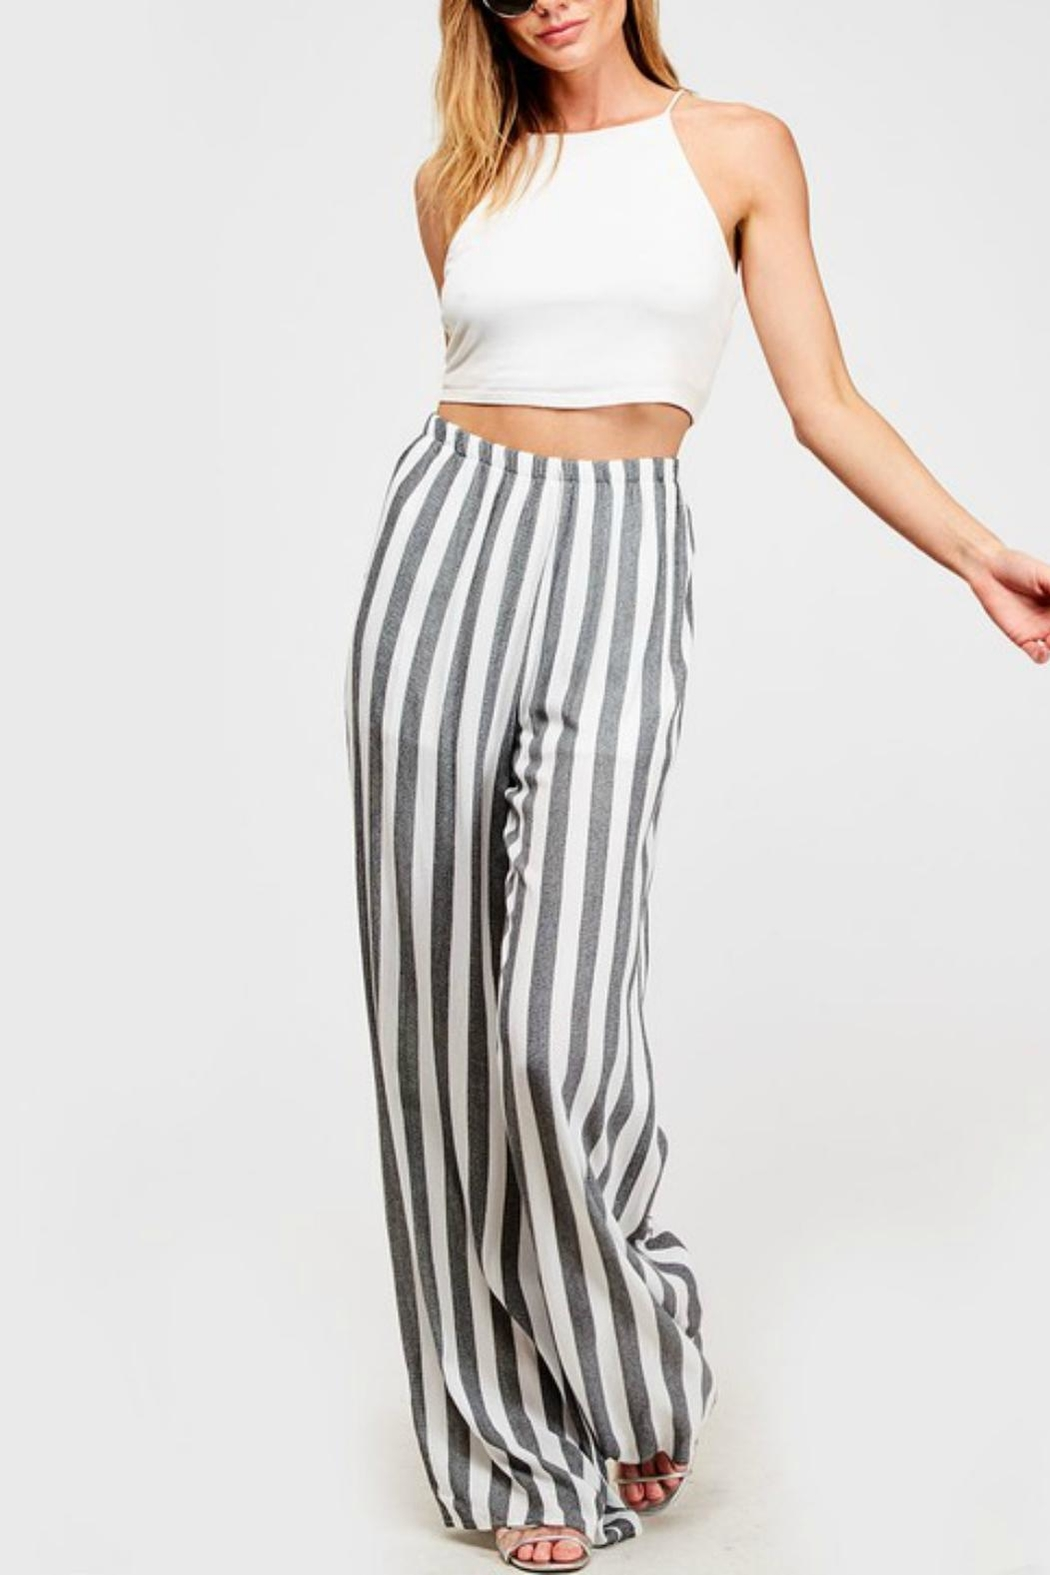 Pretty Little Things Cabana Palazzo Pants - Front Full Image